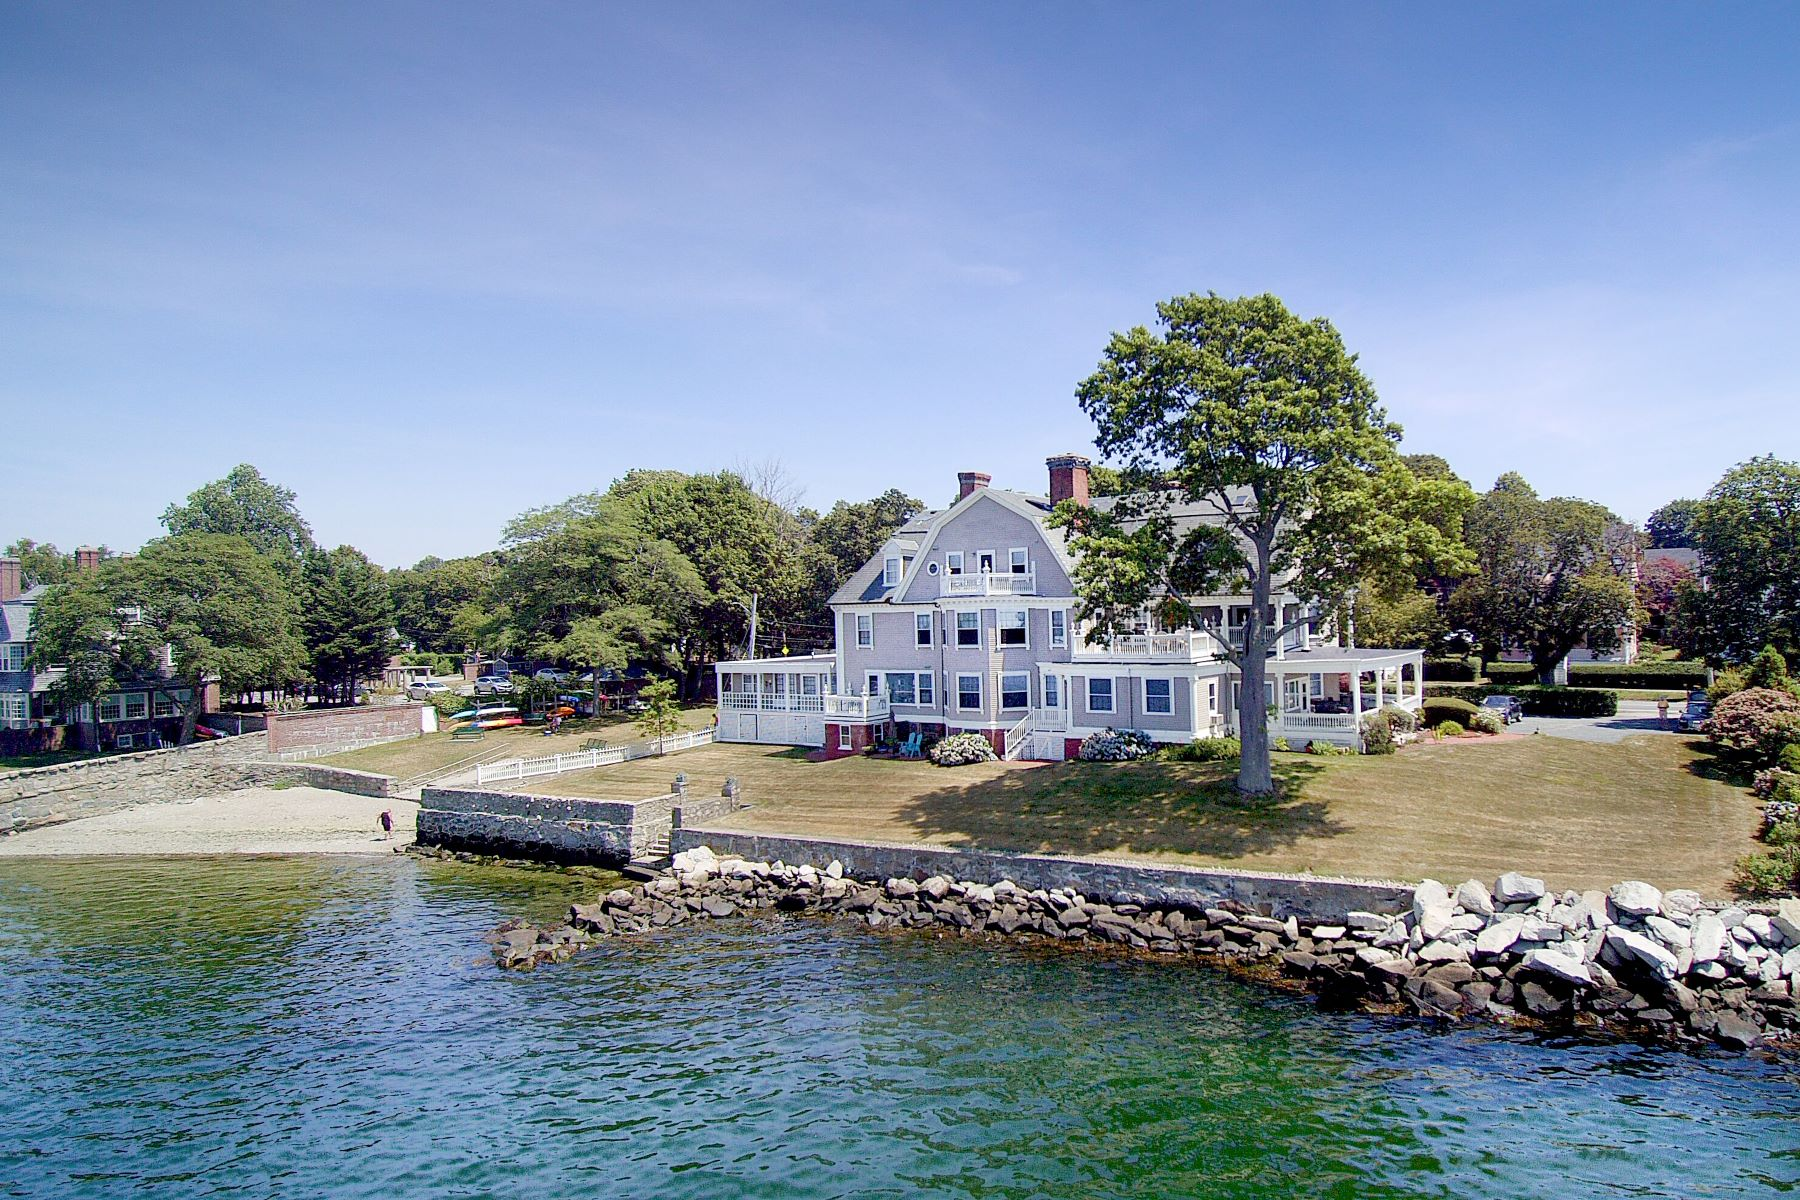 Condominiums for Sale at The Tides 217 Hope Street, 7 Bristol, Rhode Island 02809 United States